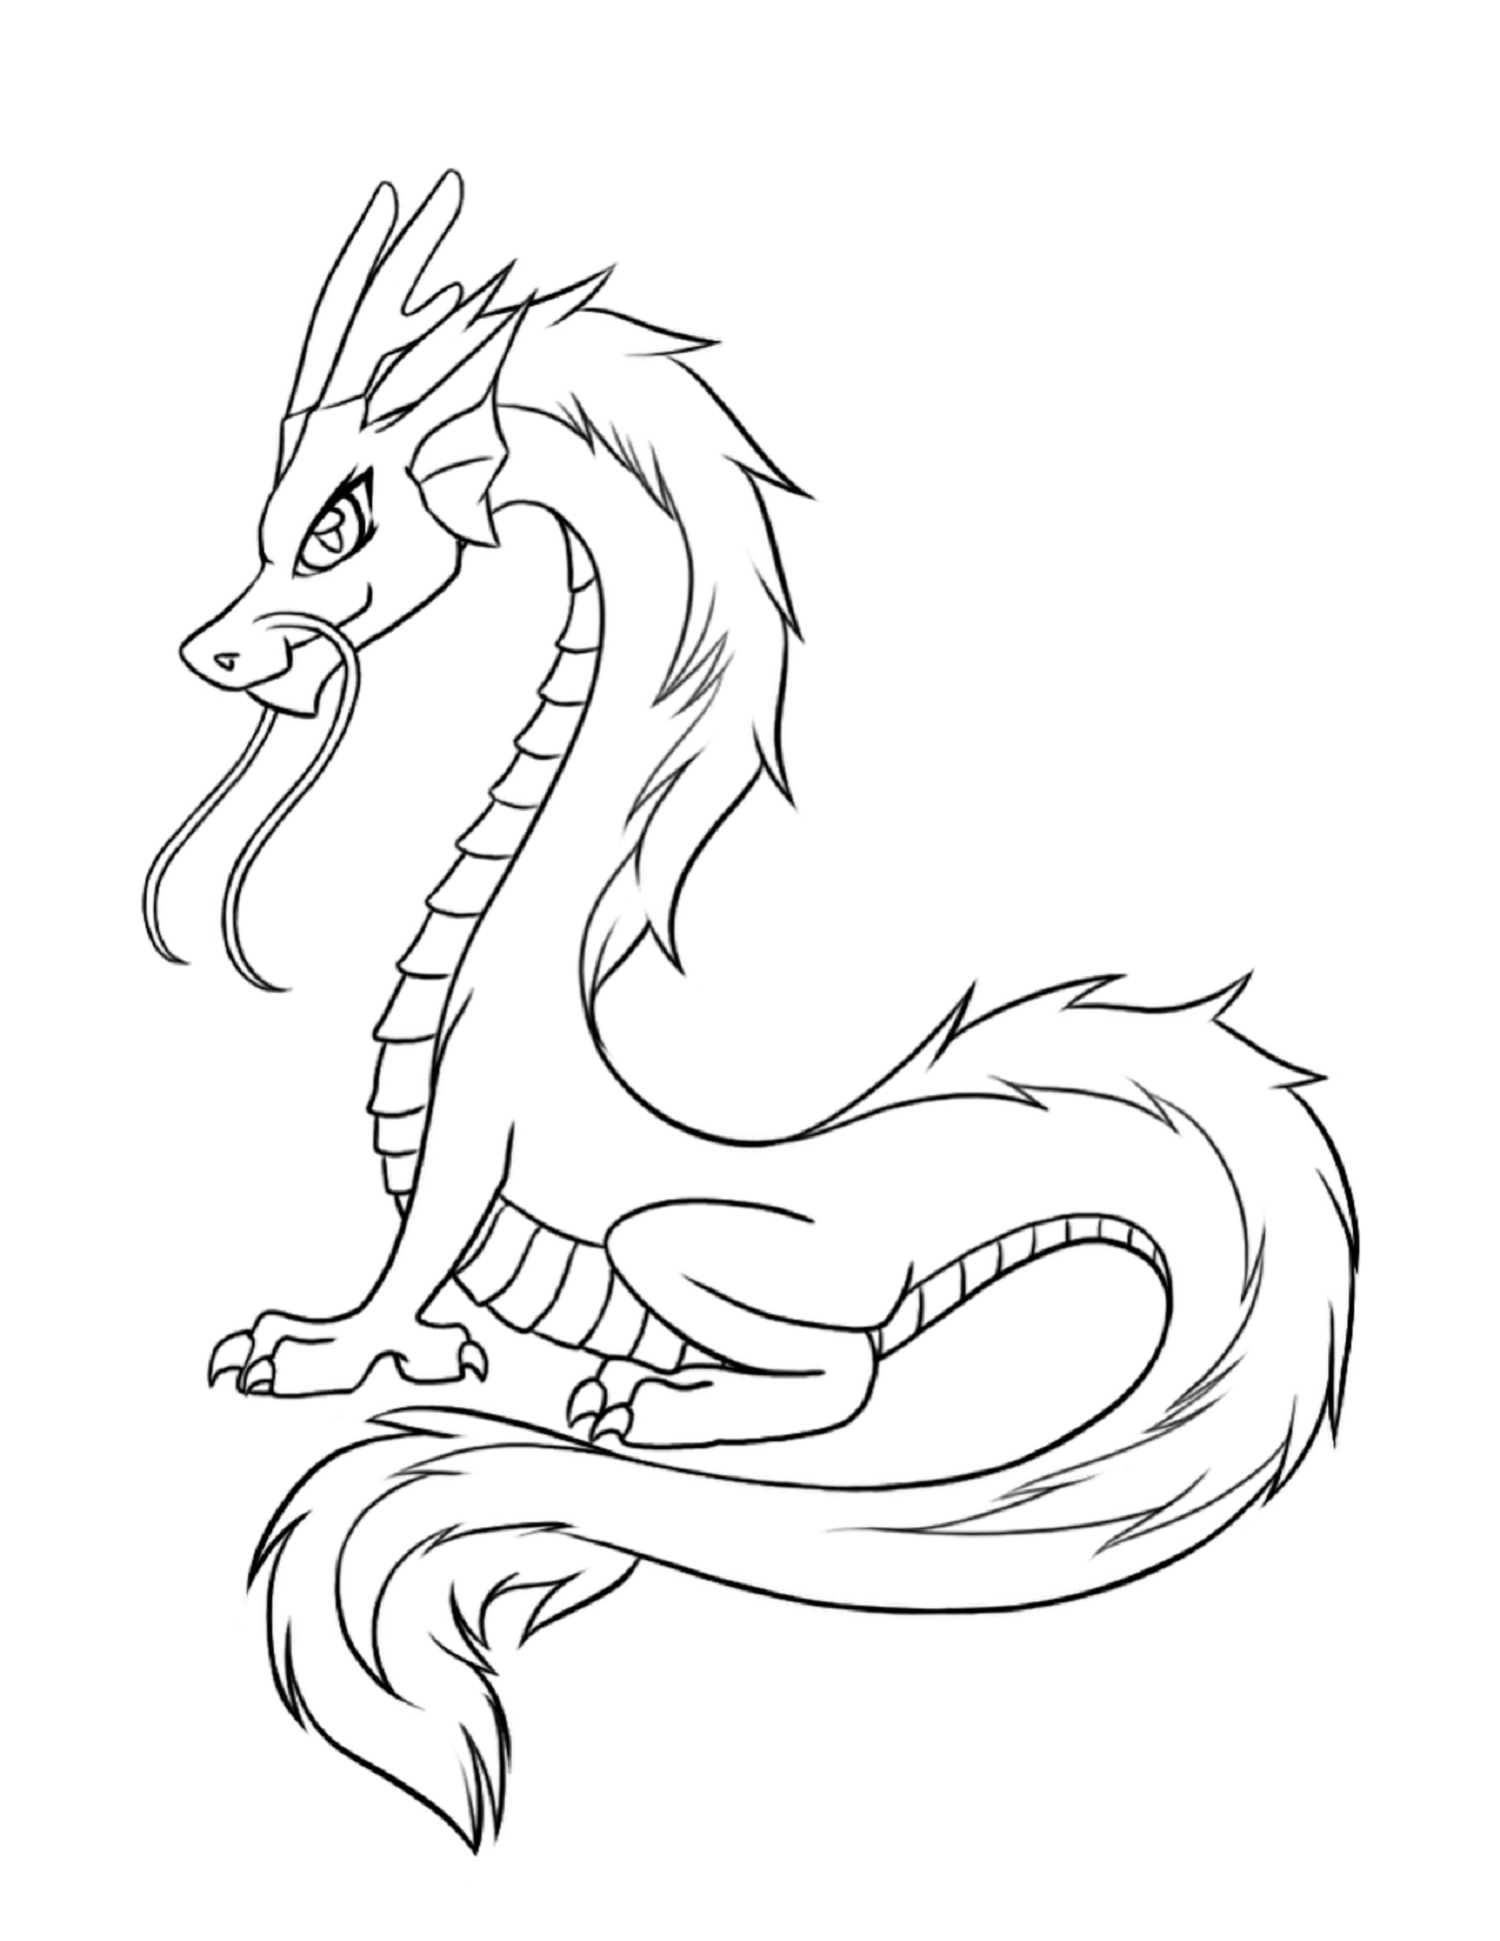 Chinese Dragon Coloring Pages - Dragon Coloring Pages for Fun Coloring